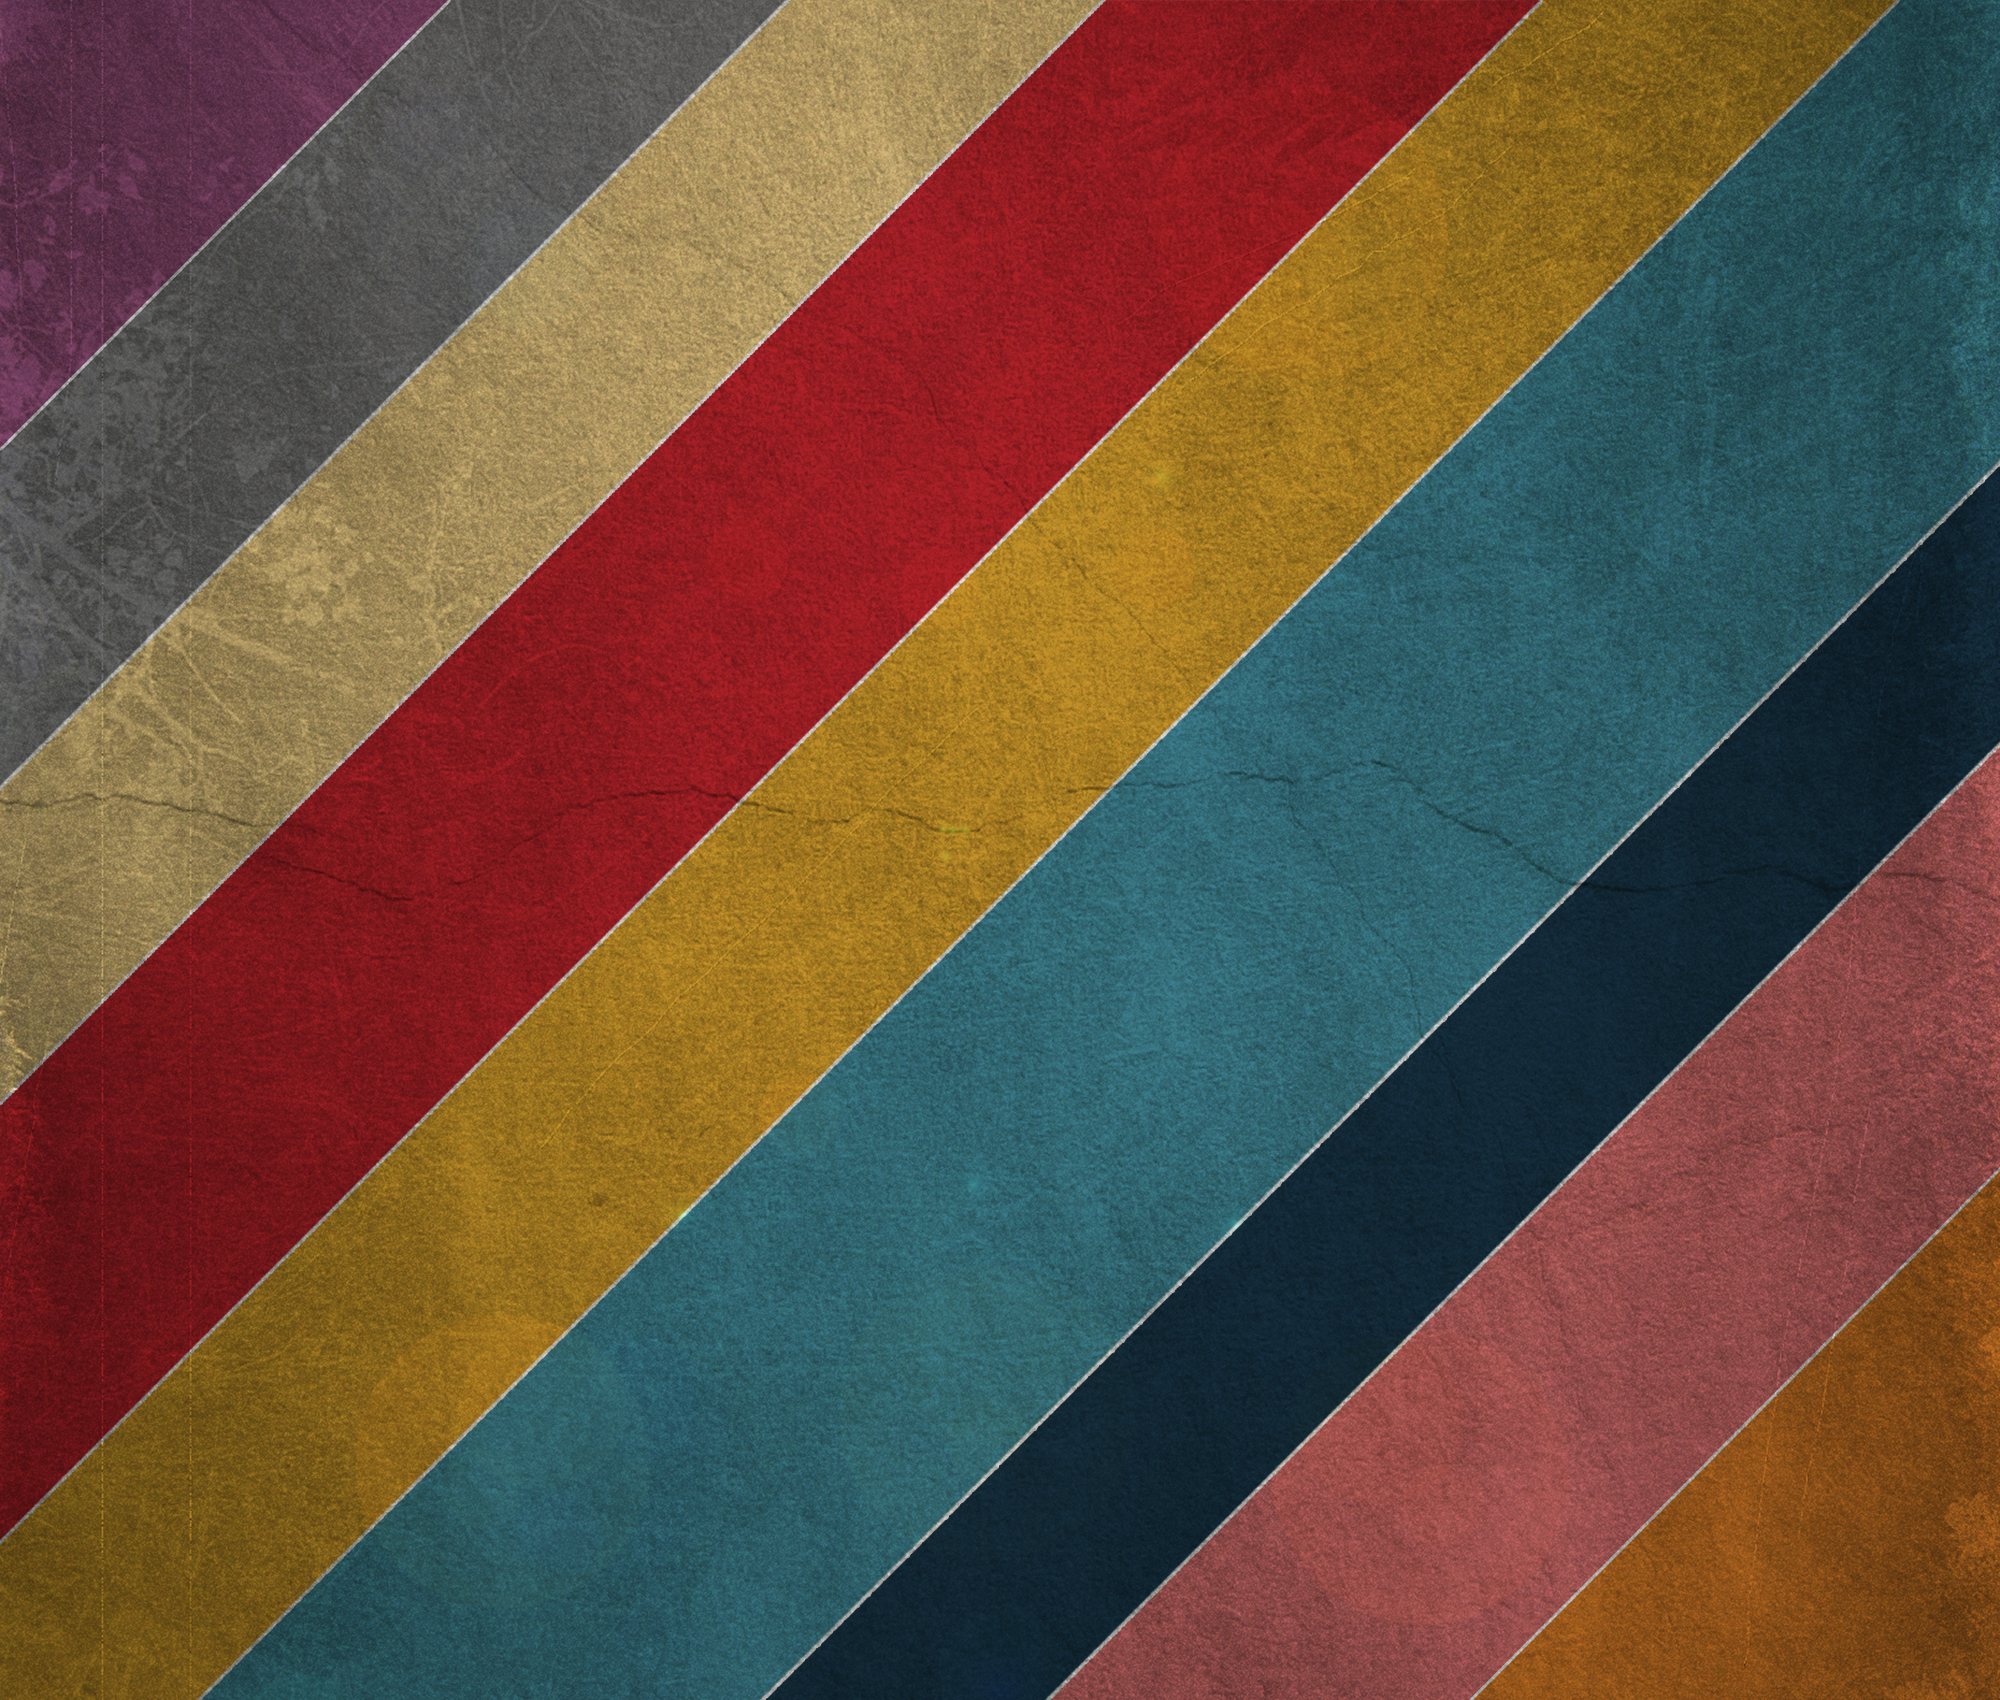 Learn more at fc04.deviantart.net u0026middot; Gadddd DeviantartRetro BackgroundBackground TextureBackgrounds ...